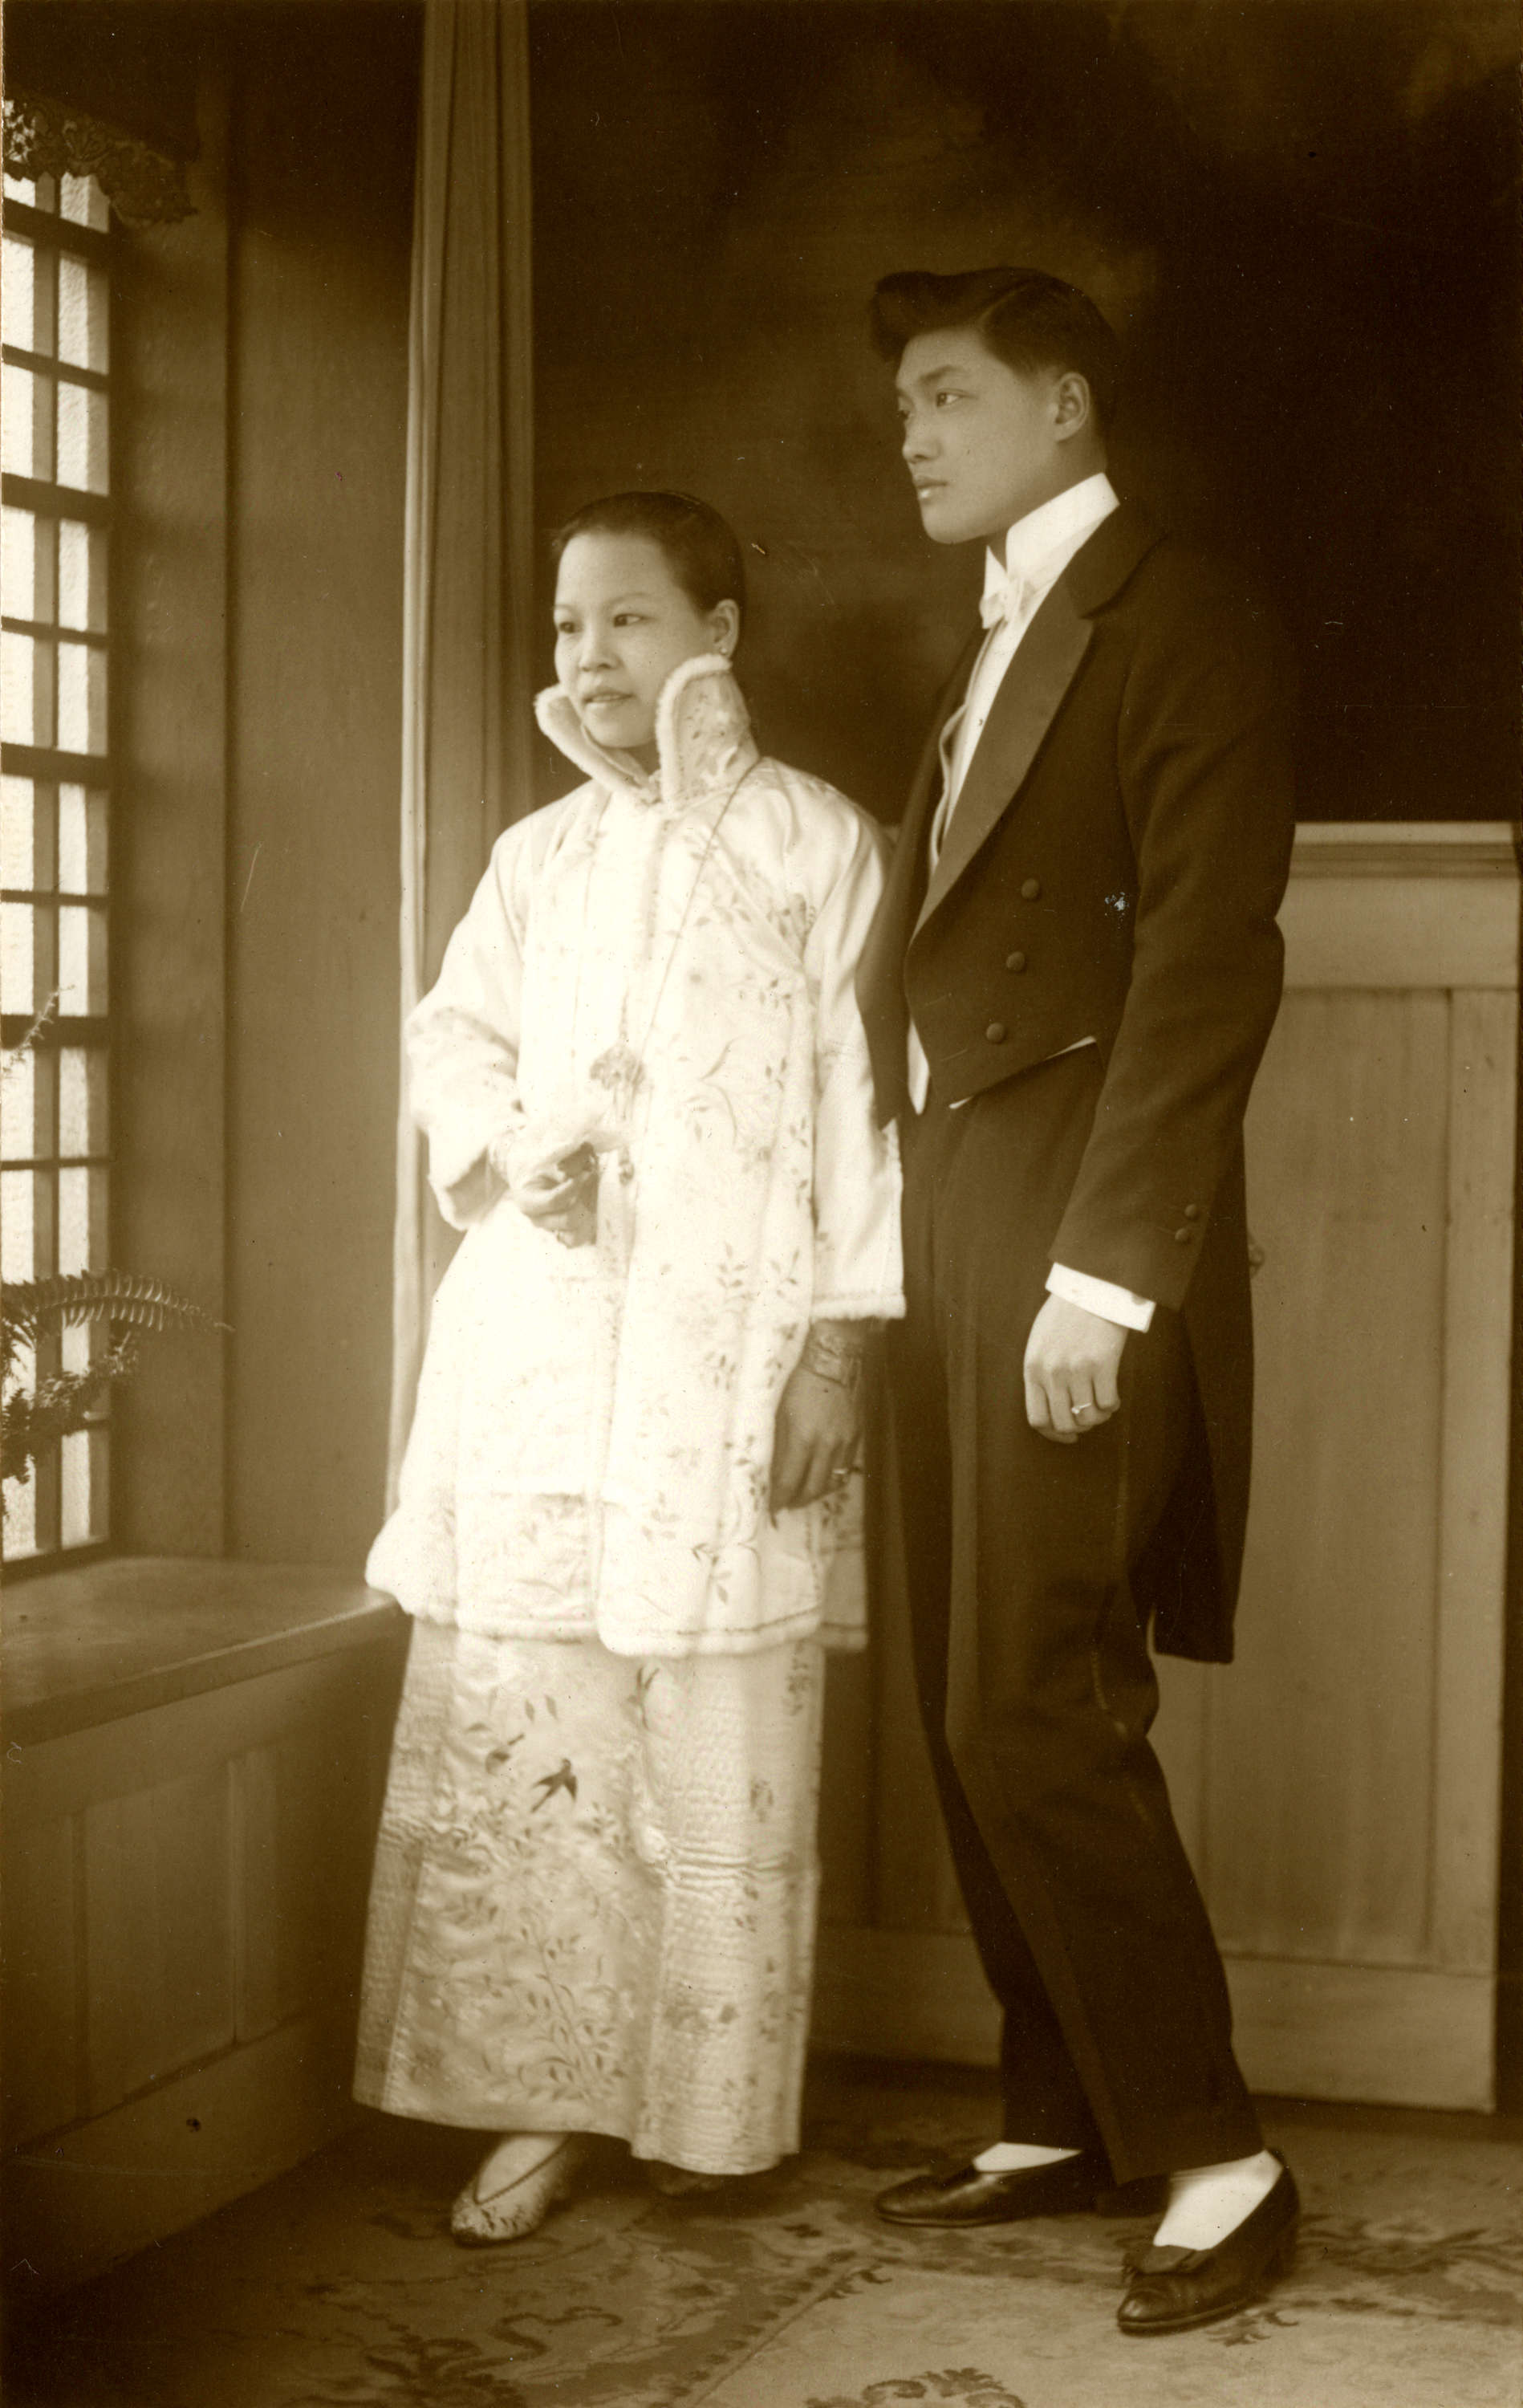 Wedding portrait of Yip Kew Him and Lee Lan Fan in Vancouver BC, 1914.